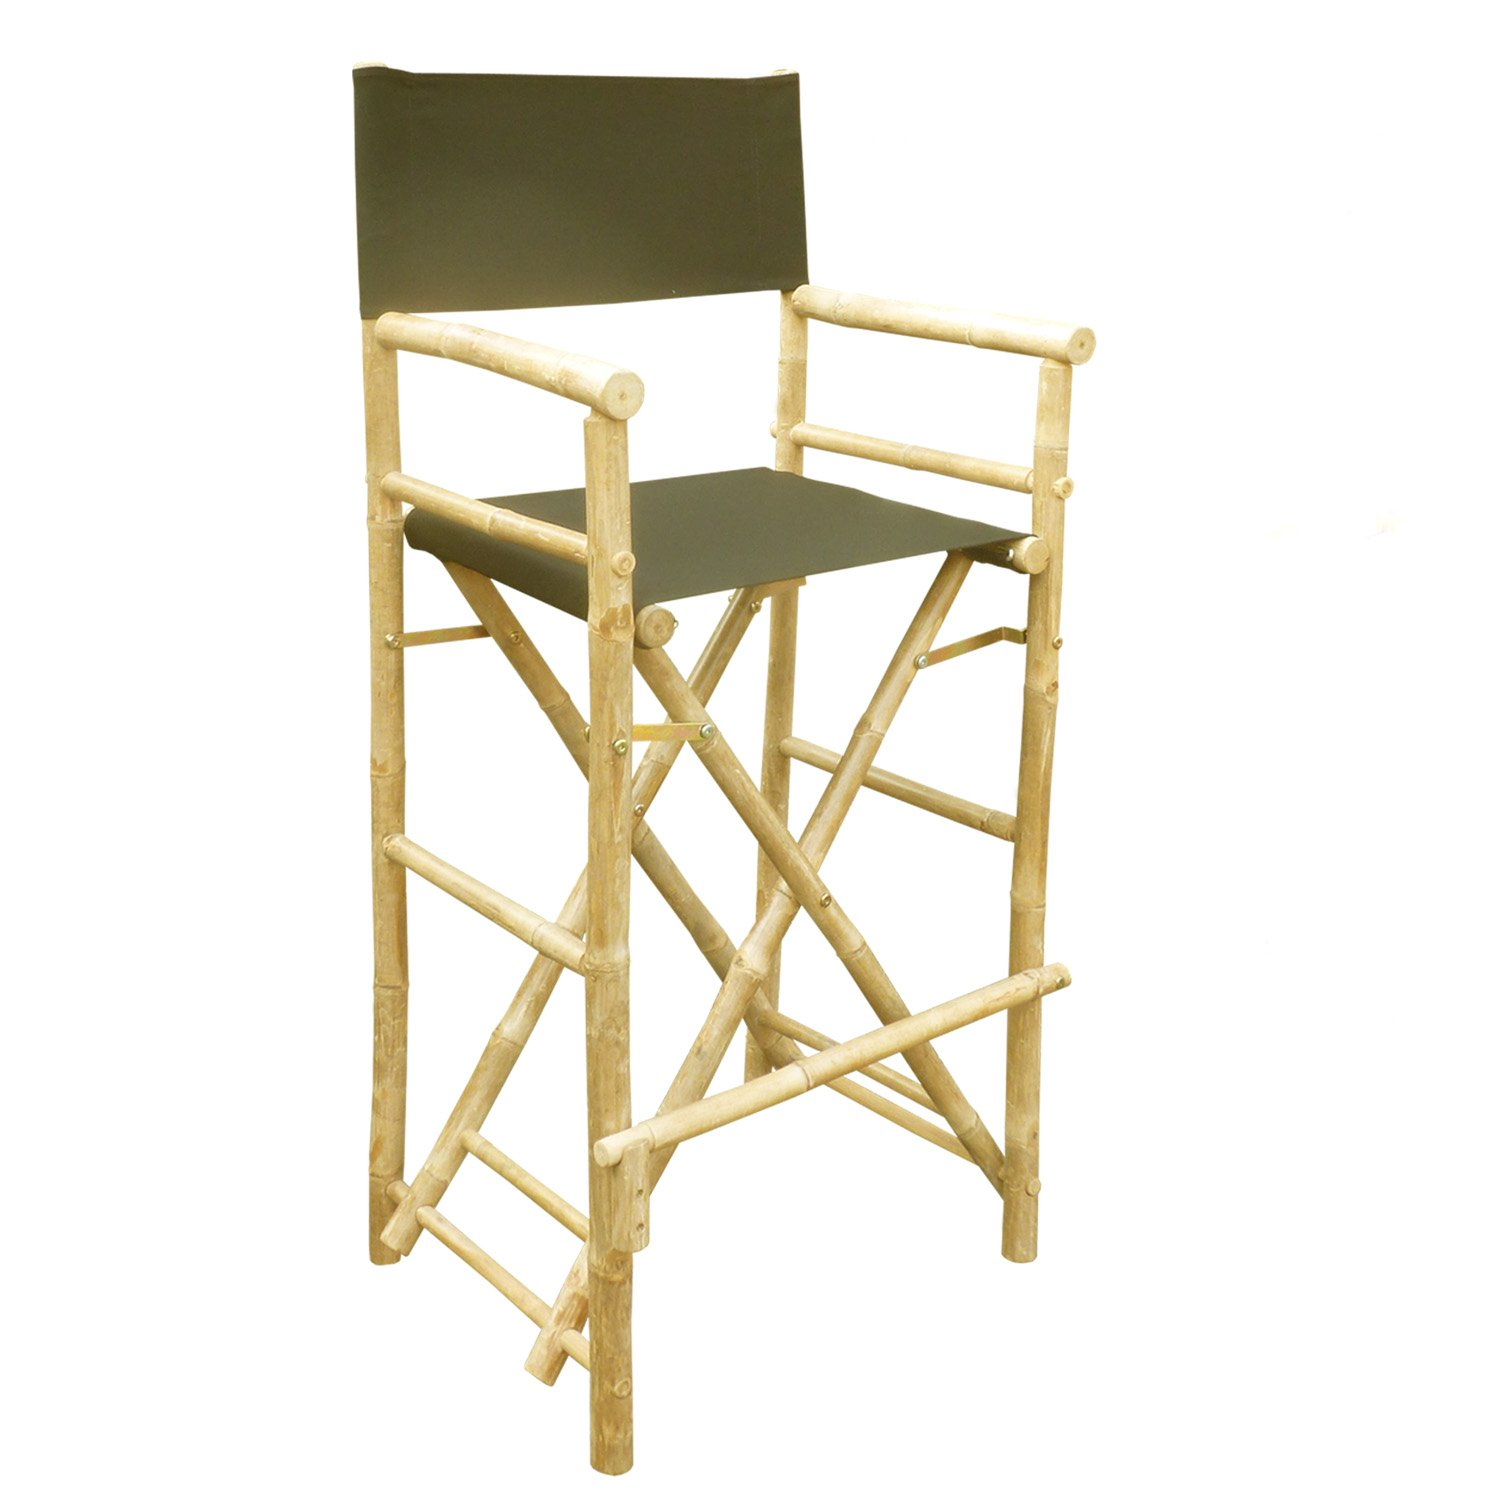 Zew Hand Crafted Tall Foldable Bamboo Director's Chair with Treated Comfortable Canvas, Set of 2 Bamboo Folding Chairs, Black